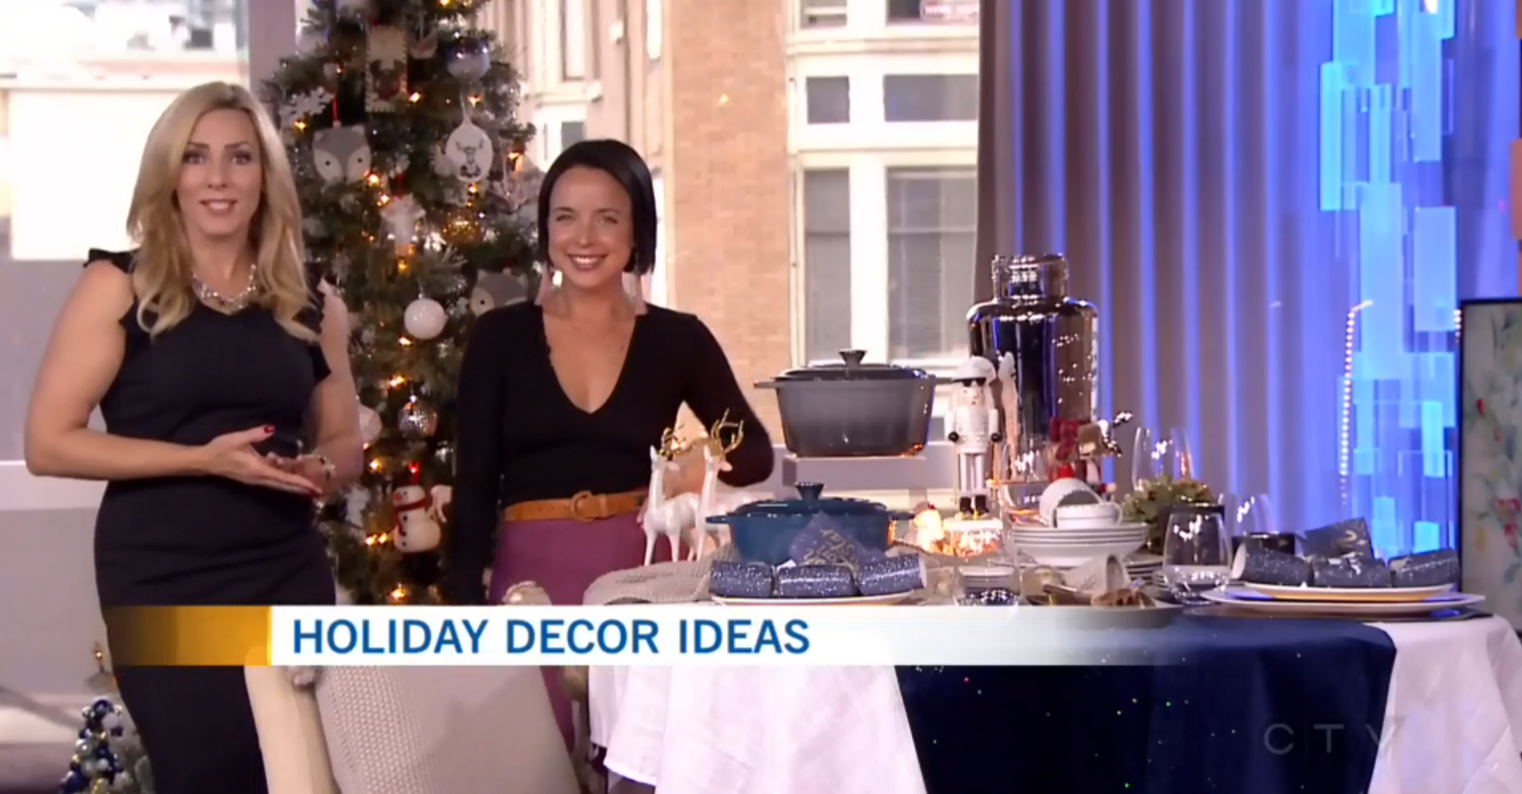 CTV Morning Live: Decor Tips for Chic Holiday Entertaining